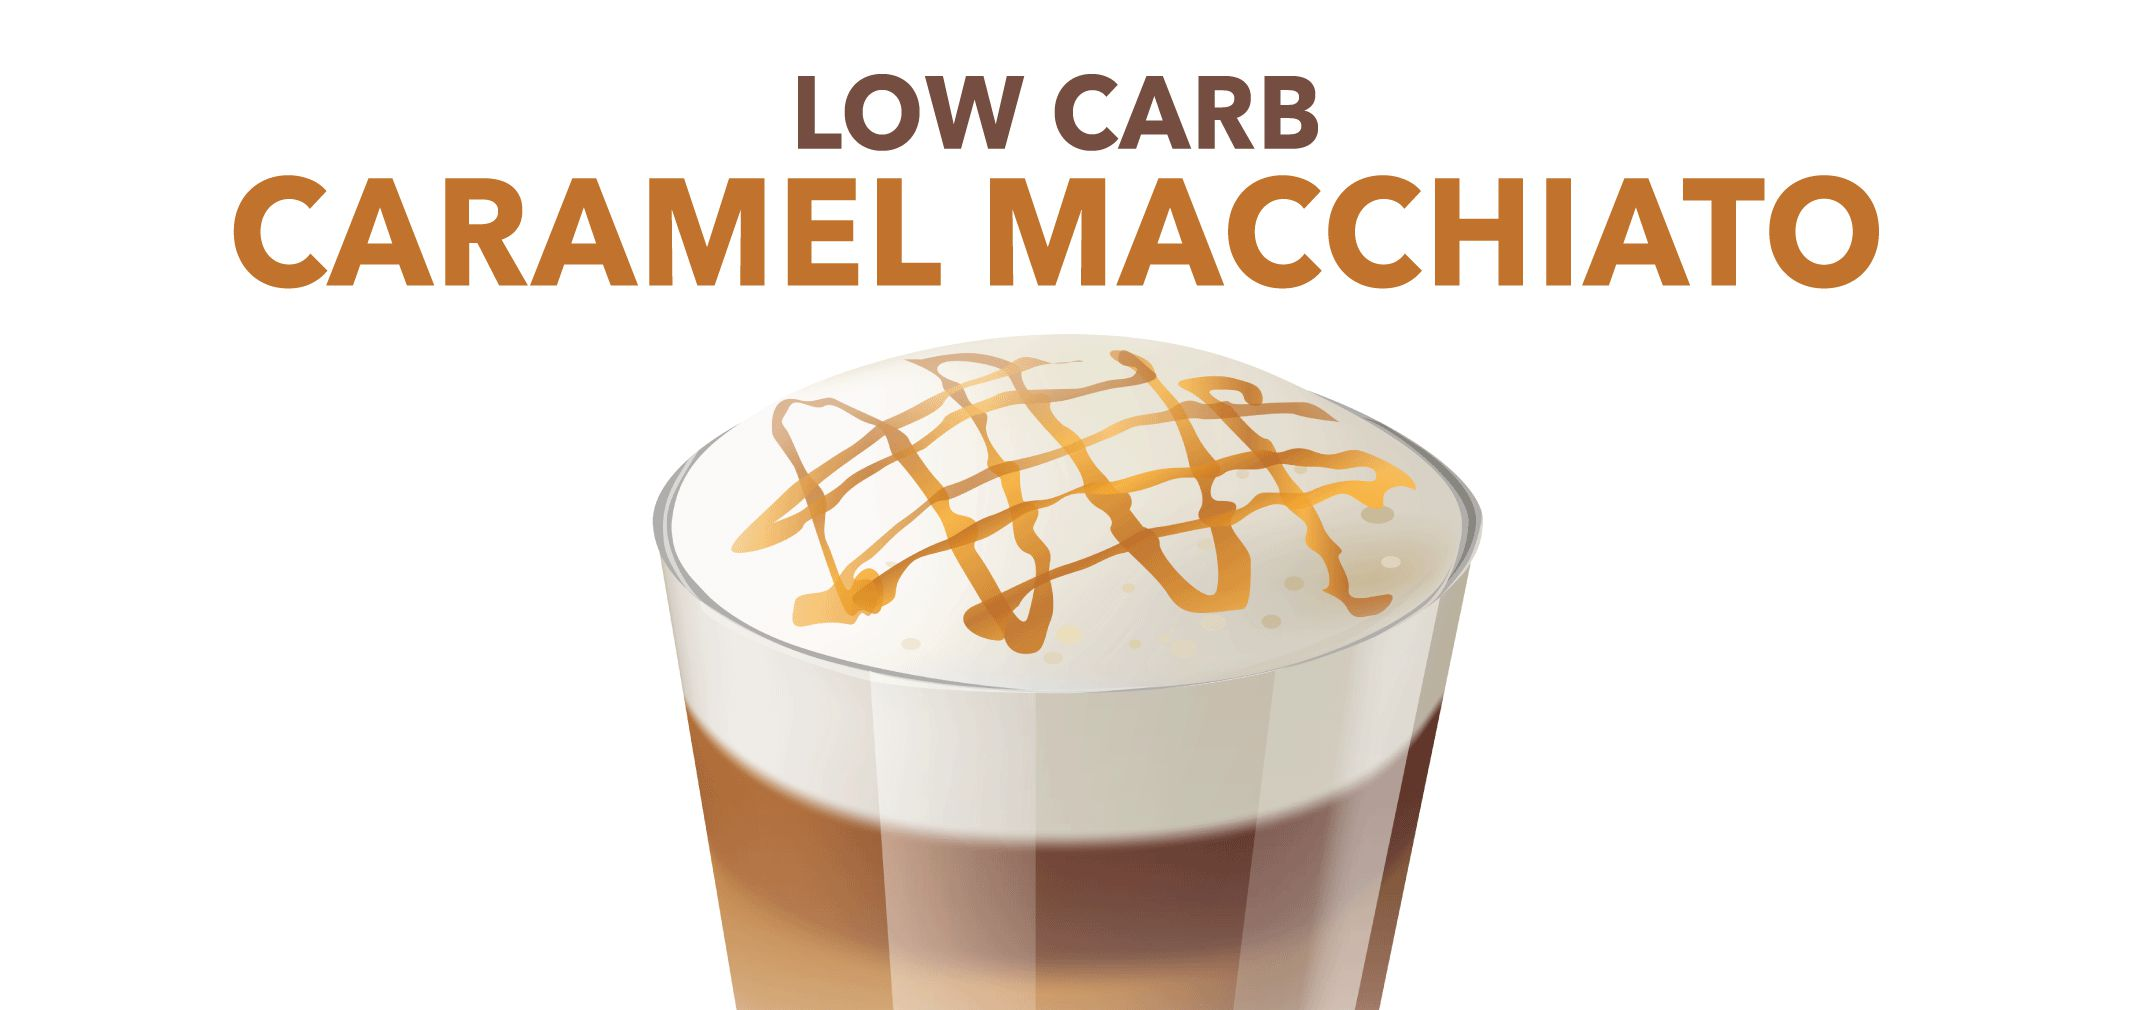 low carb caramel macchiato label image